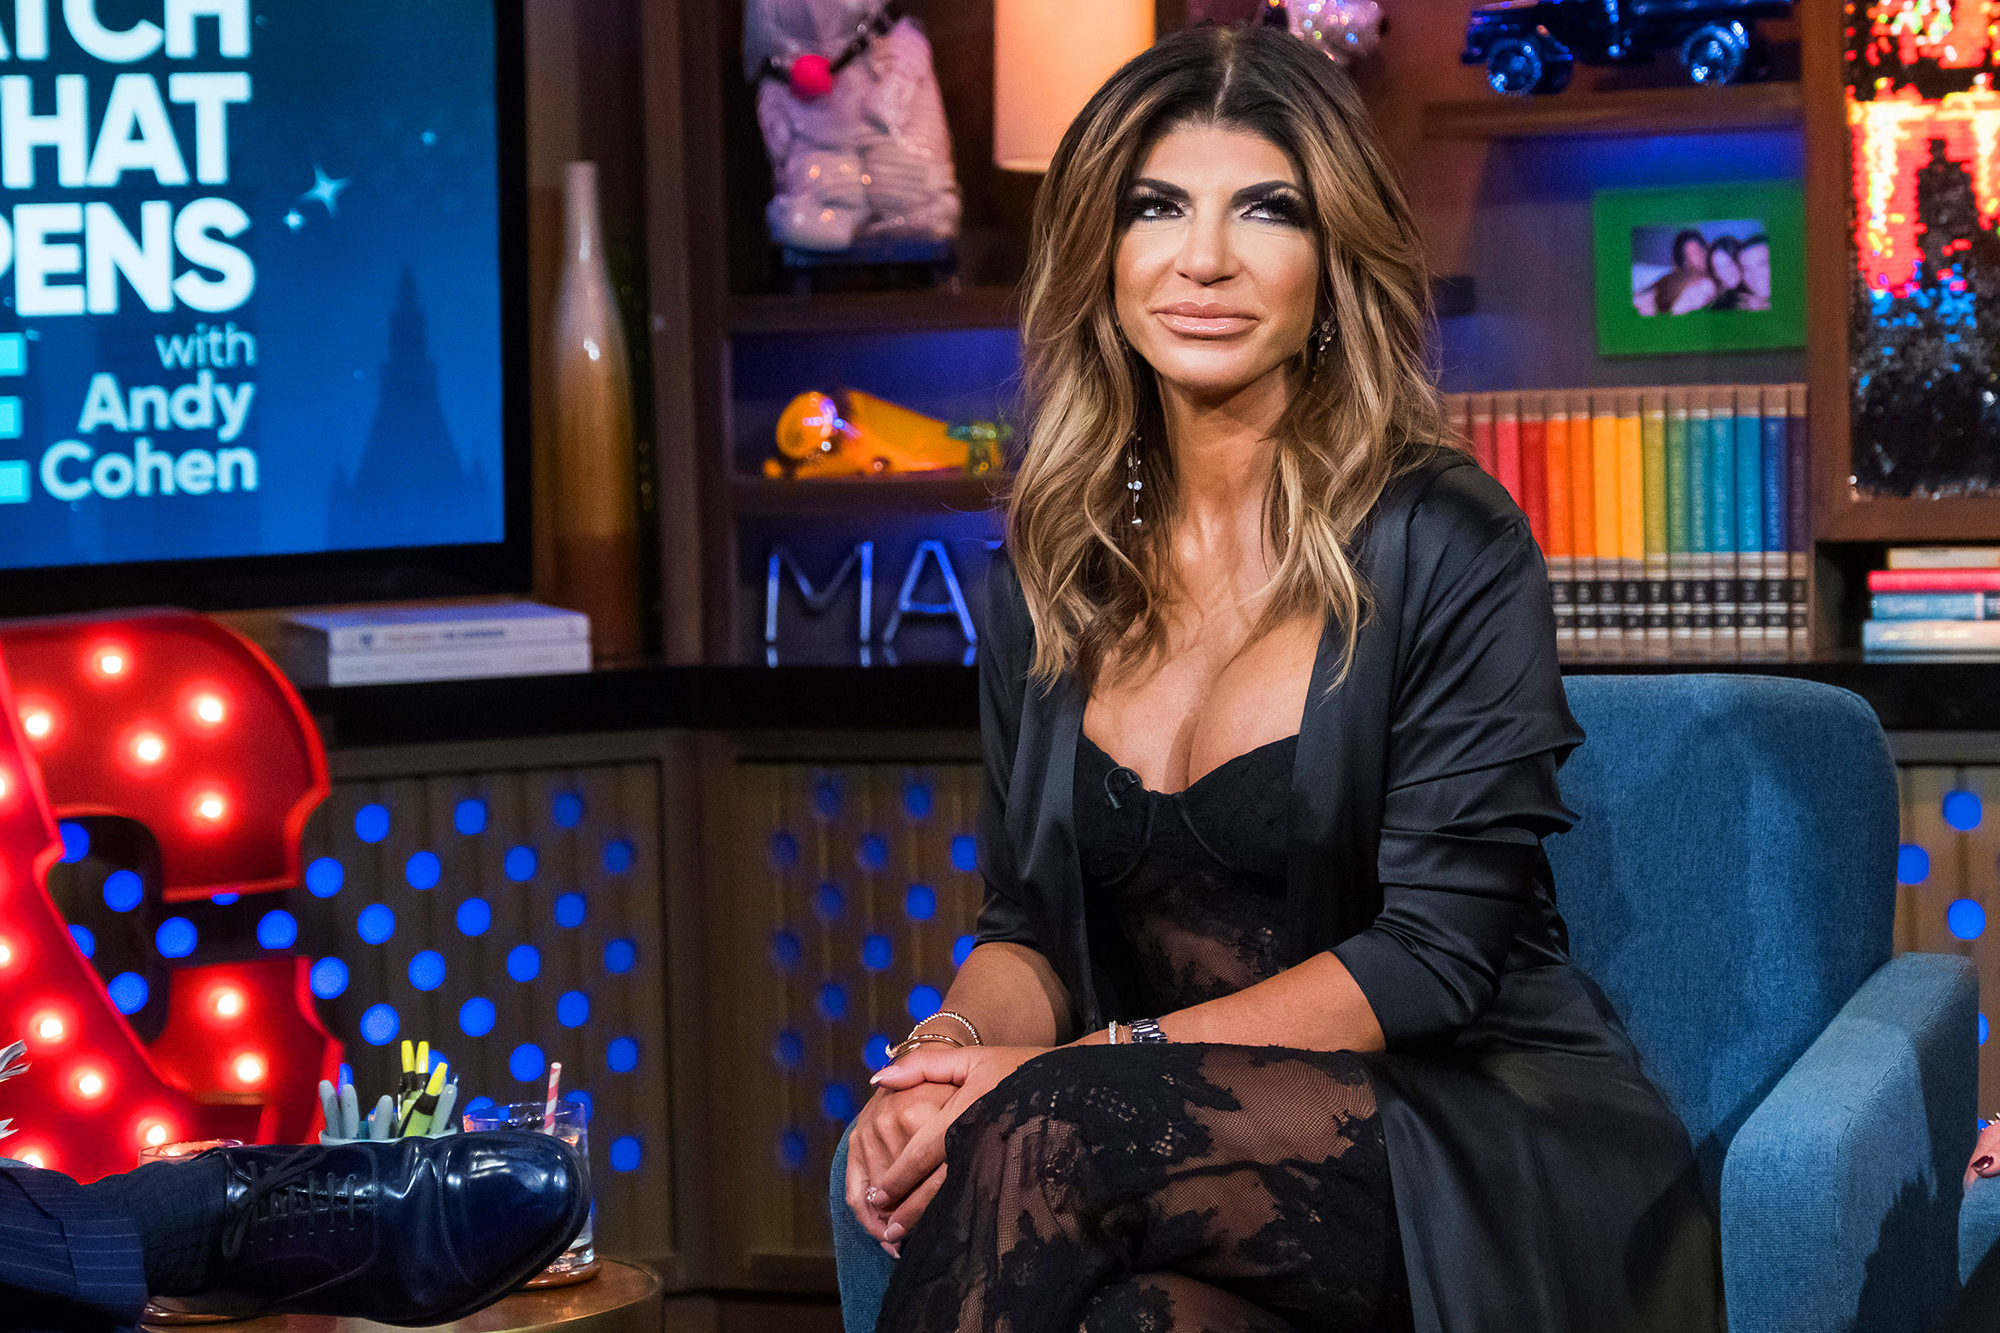 """Everything Teresa Giudice Has Said About Joe Giudice's Deportation - While speaking at a Real Housewives event in Connecticut in October 2018, the Bravo personality asked the crowd """"to please pray for me and my family ."""" She also said that she """"cannot wait to see the light at the end of the tunnel."""""""